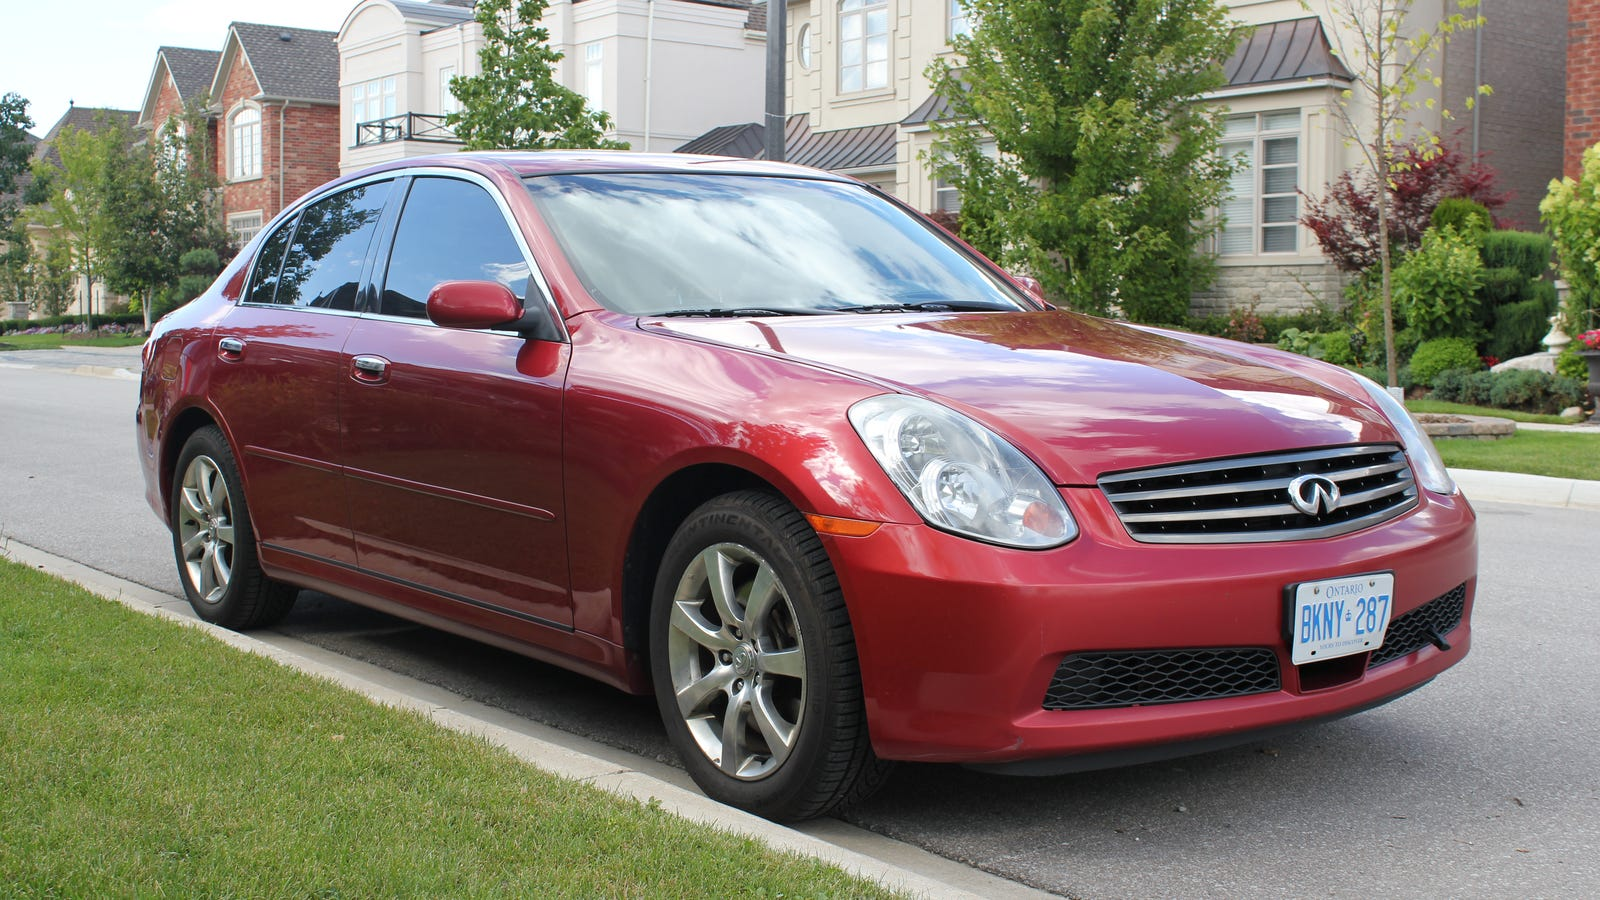 2006 Infiniti G35x The Oppo Review